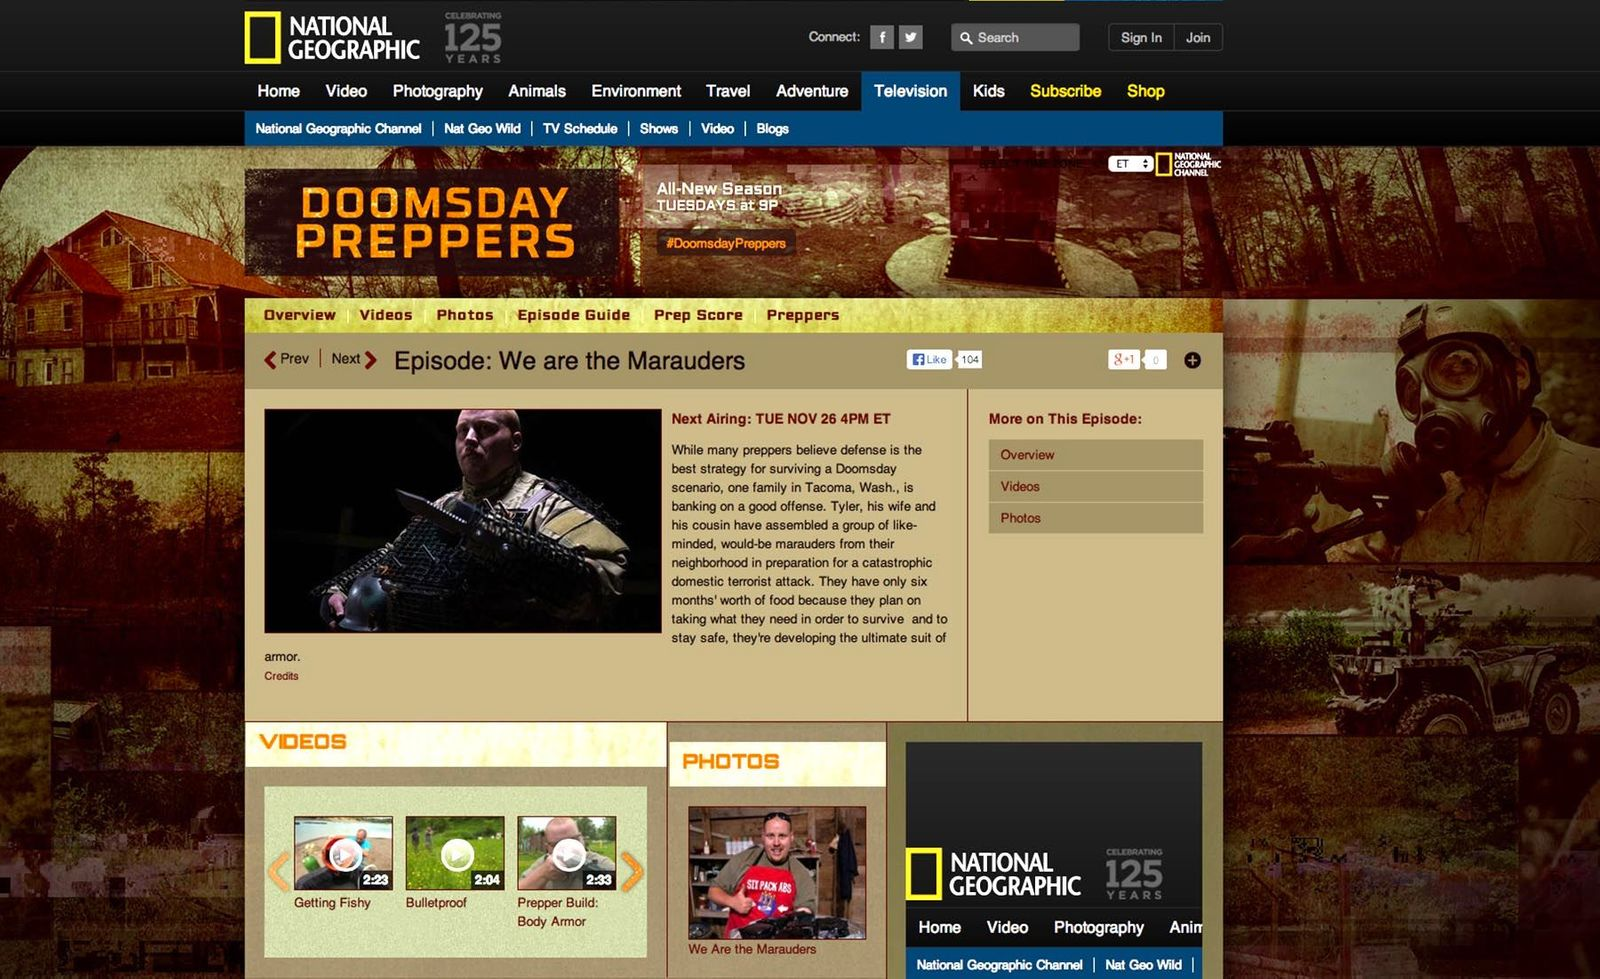 1doomsdaypreppers_washington_nationalgeographicchannel